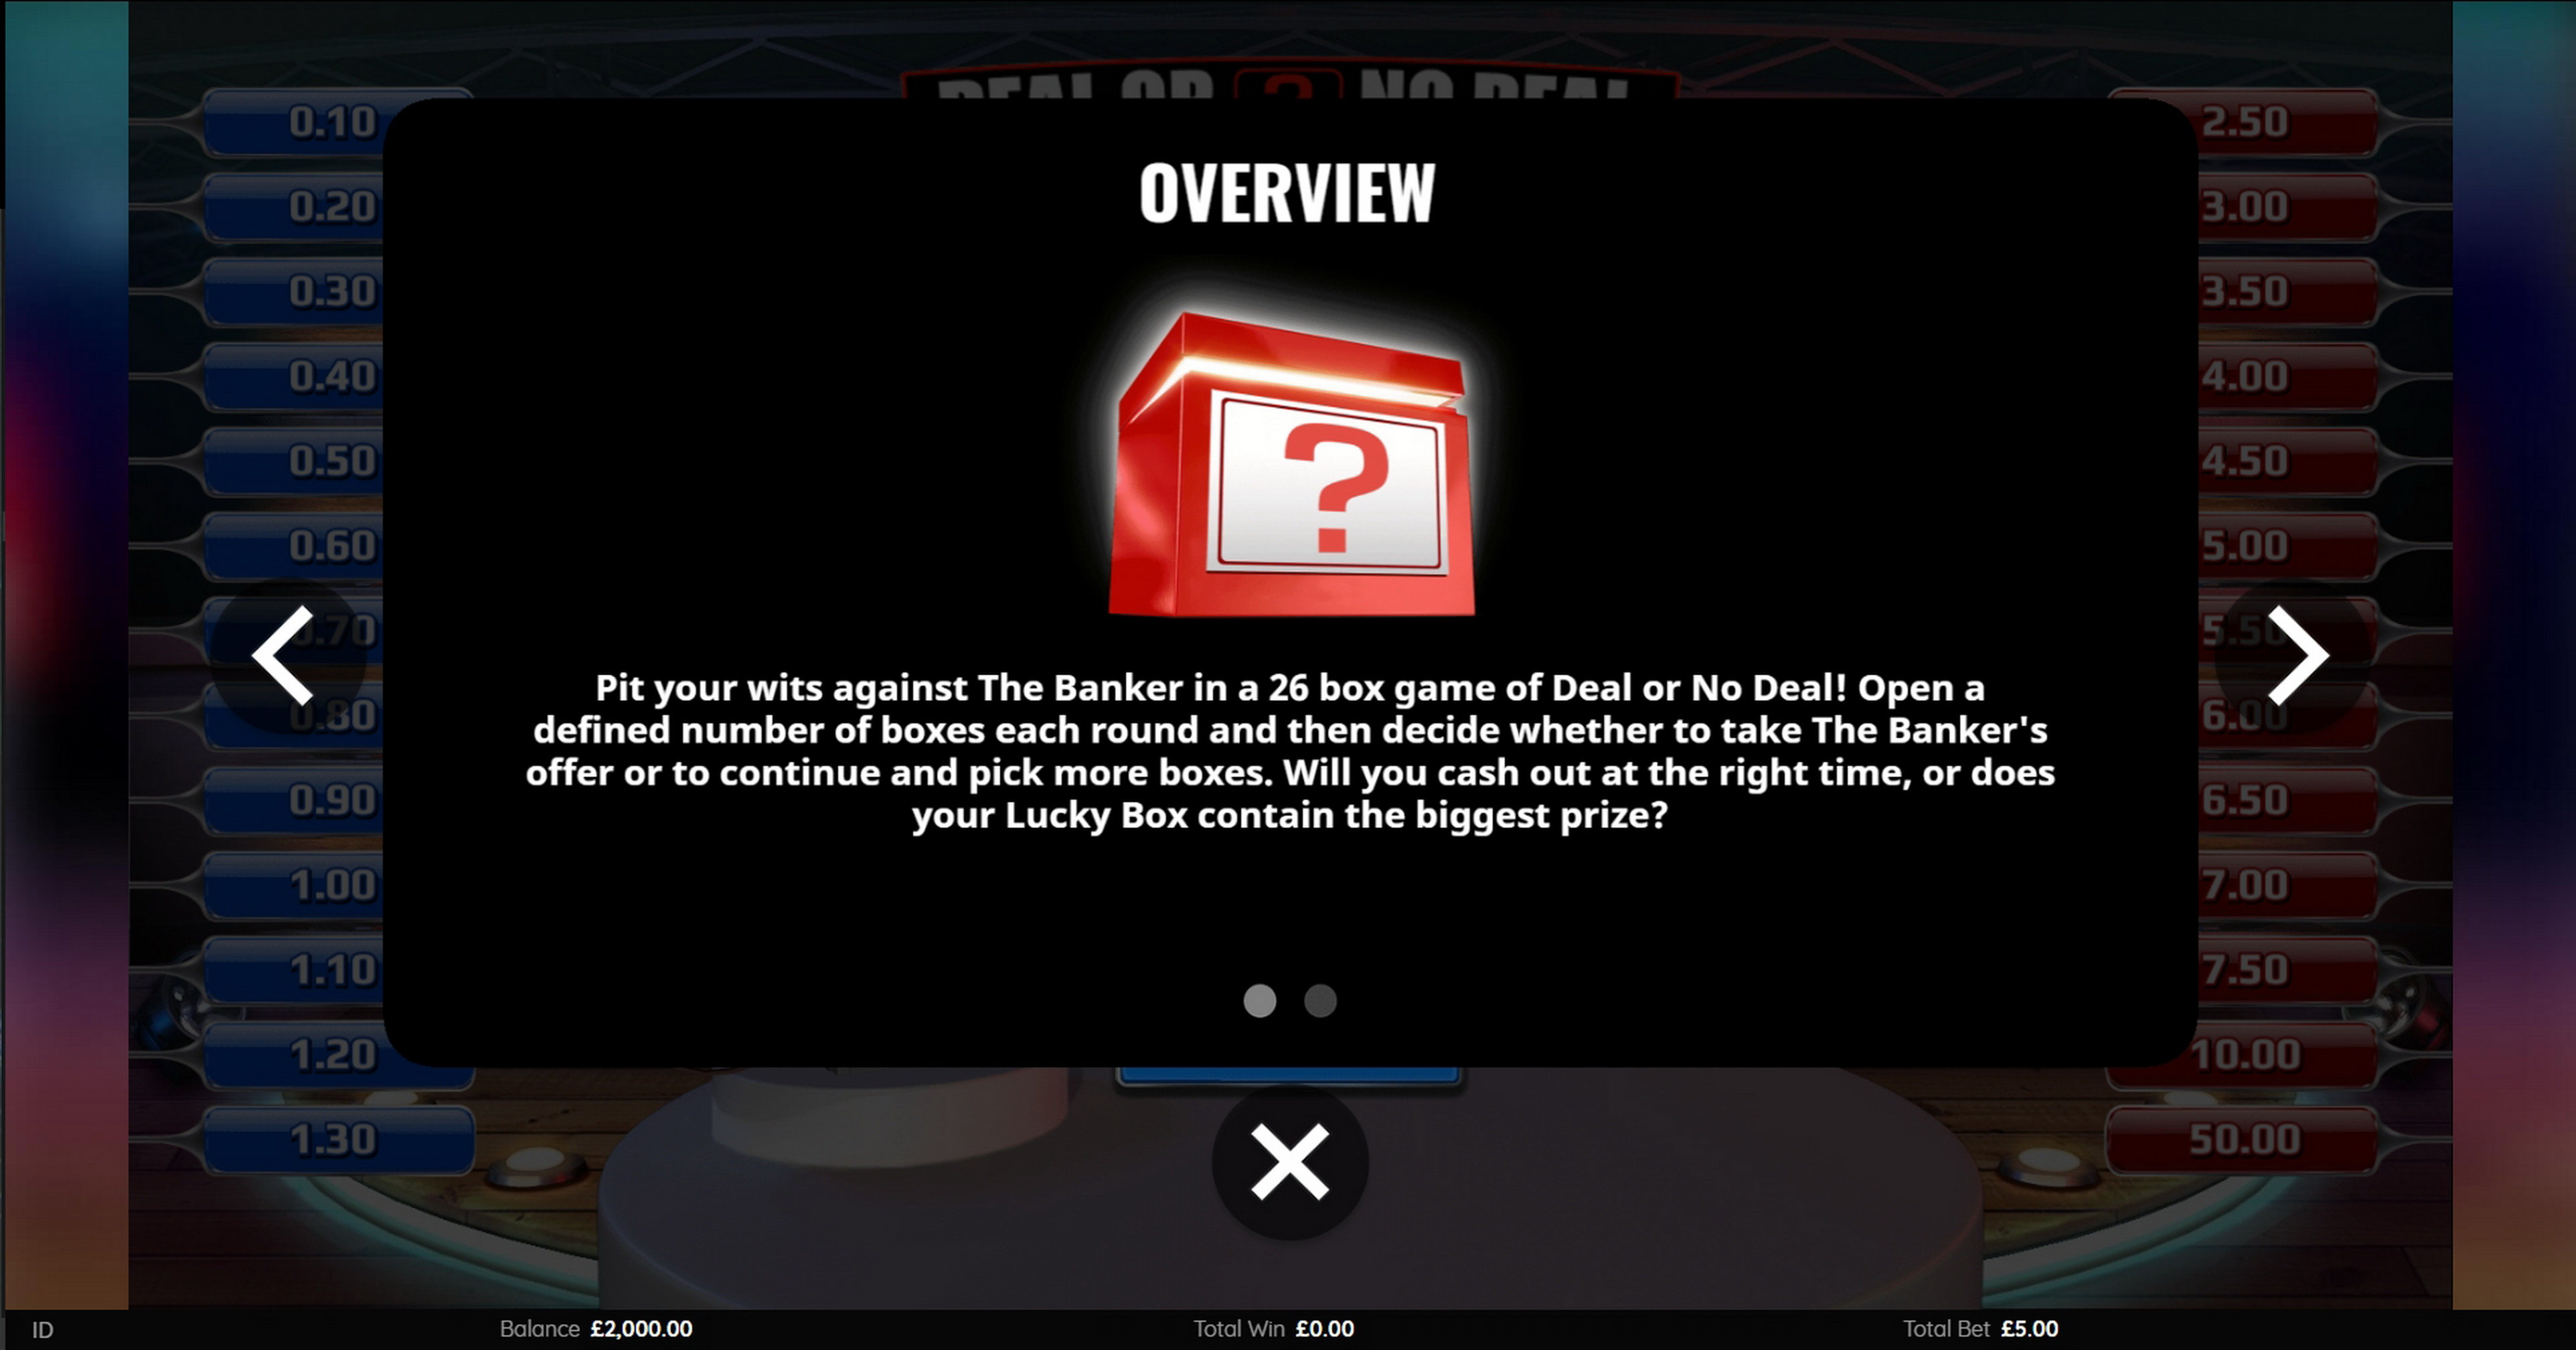 Info of Deal Or No Deal (Endemol Games) Slot Game by Endemol Games